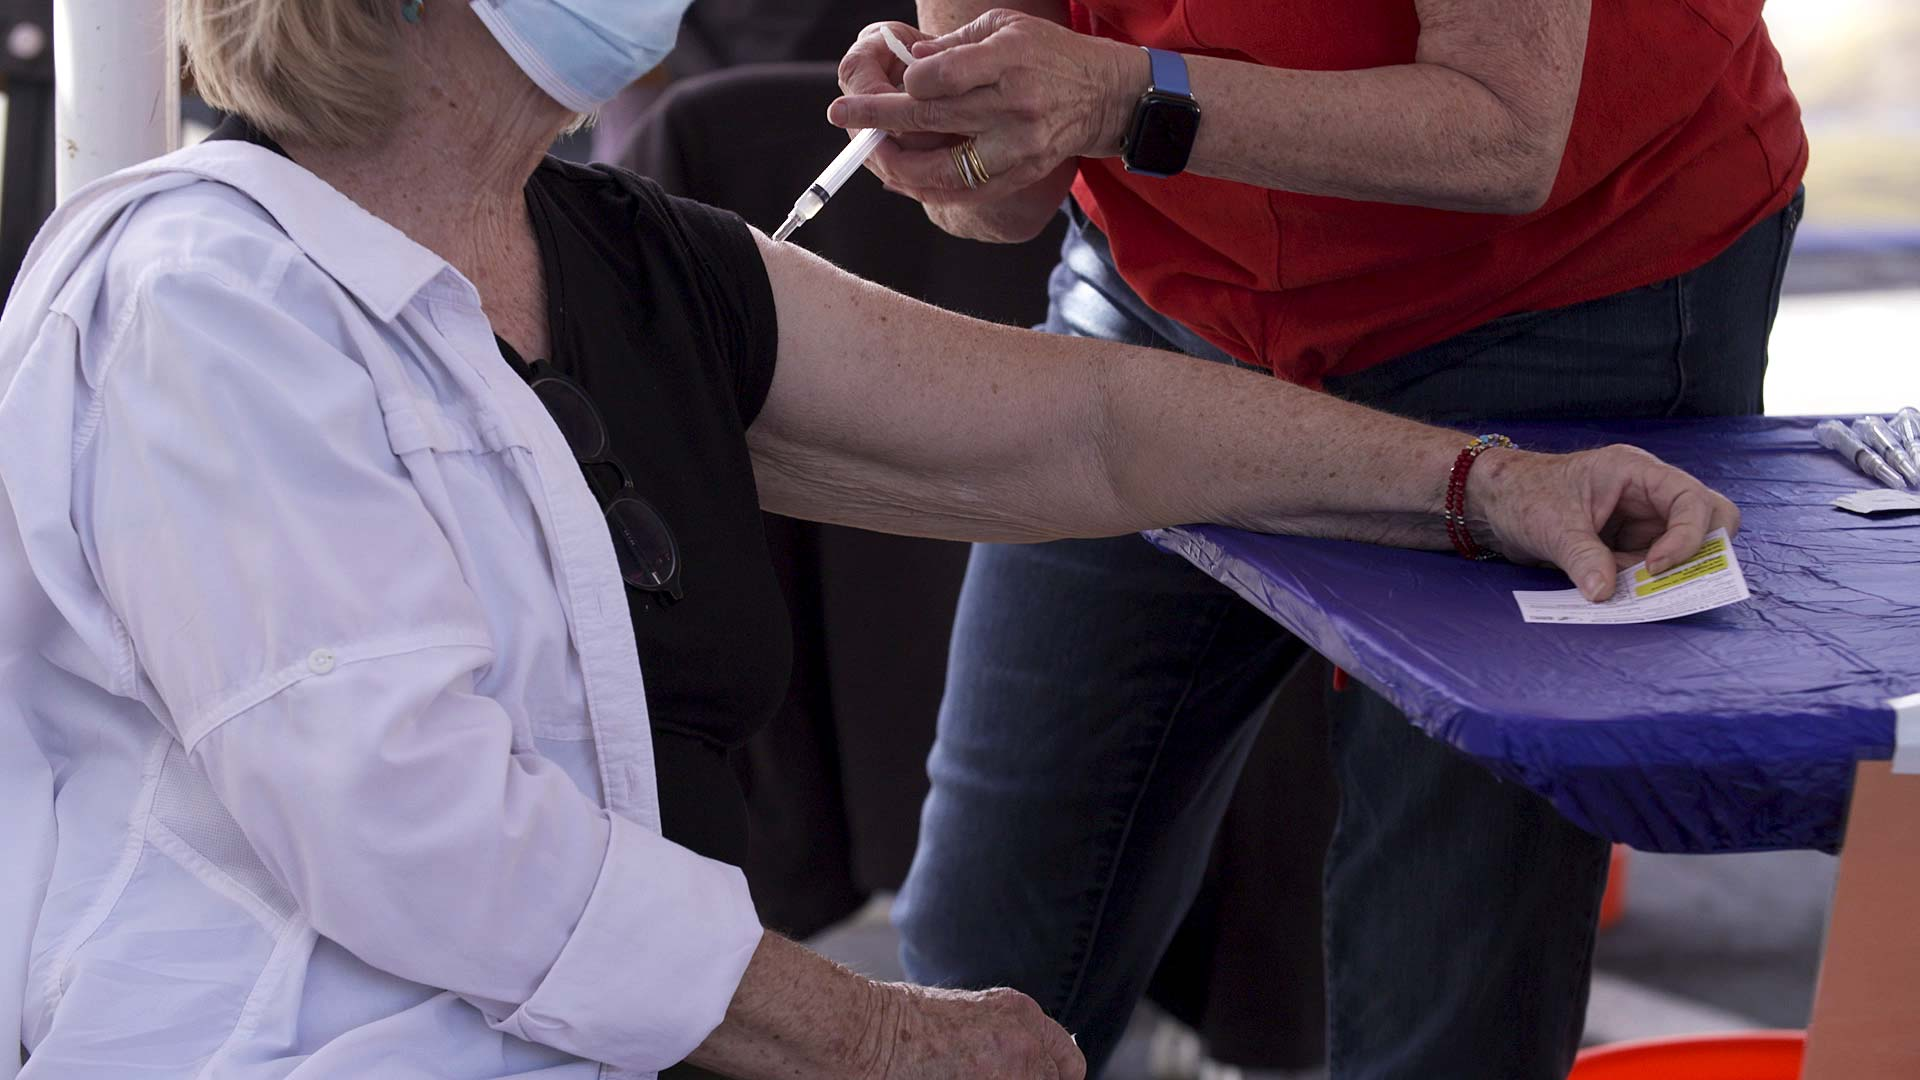 A woman receives a COVID-19 vaccine during a mobile event run by Pima County and Tucson Medical Center outside St. John the Evangelist Catholic Church on March 6, 2021.